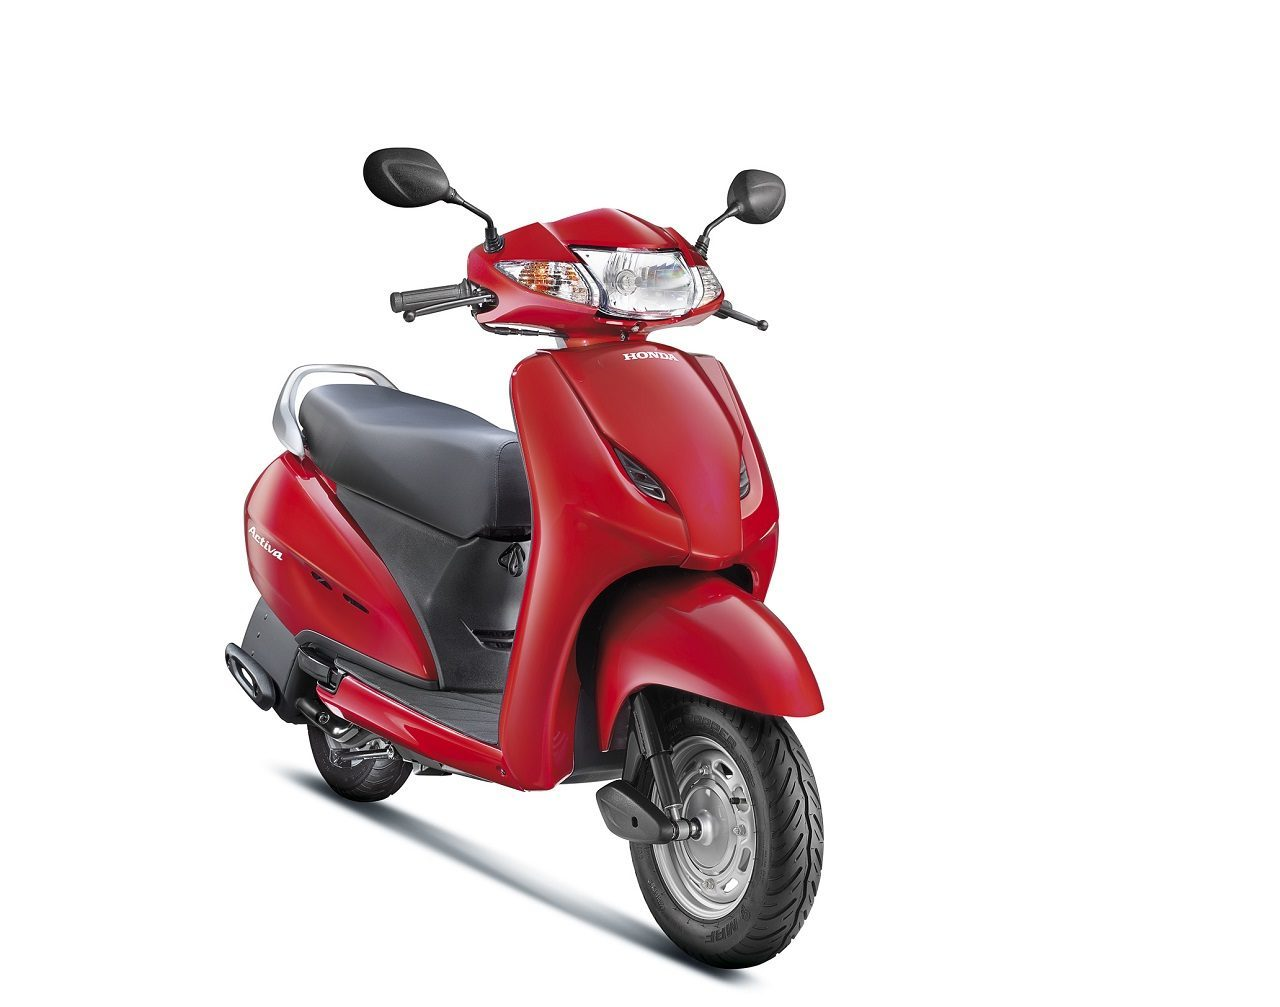 Honda activa 3g best 45 hd wallpapers types cars - 3g wallpaper hd ...